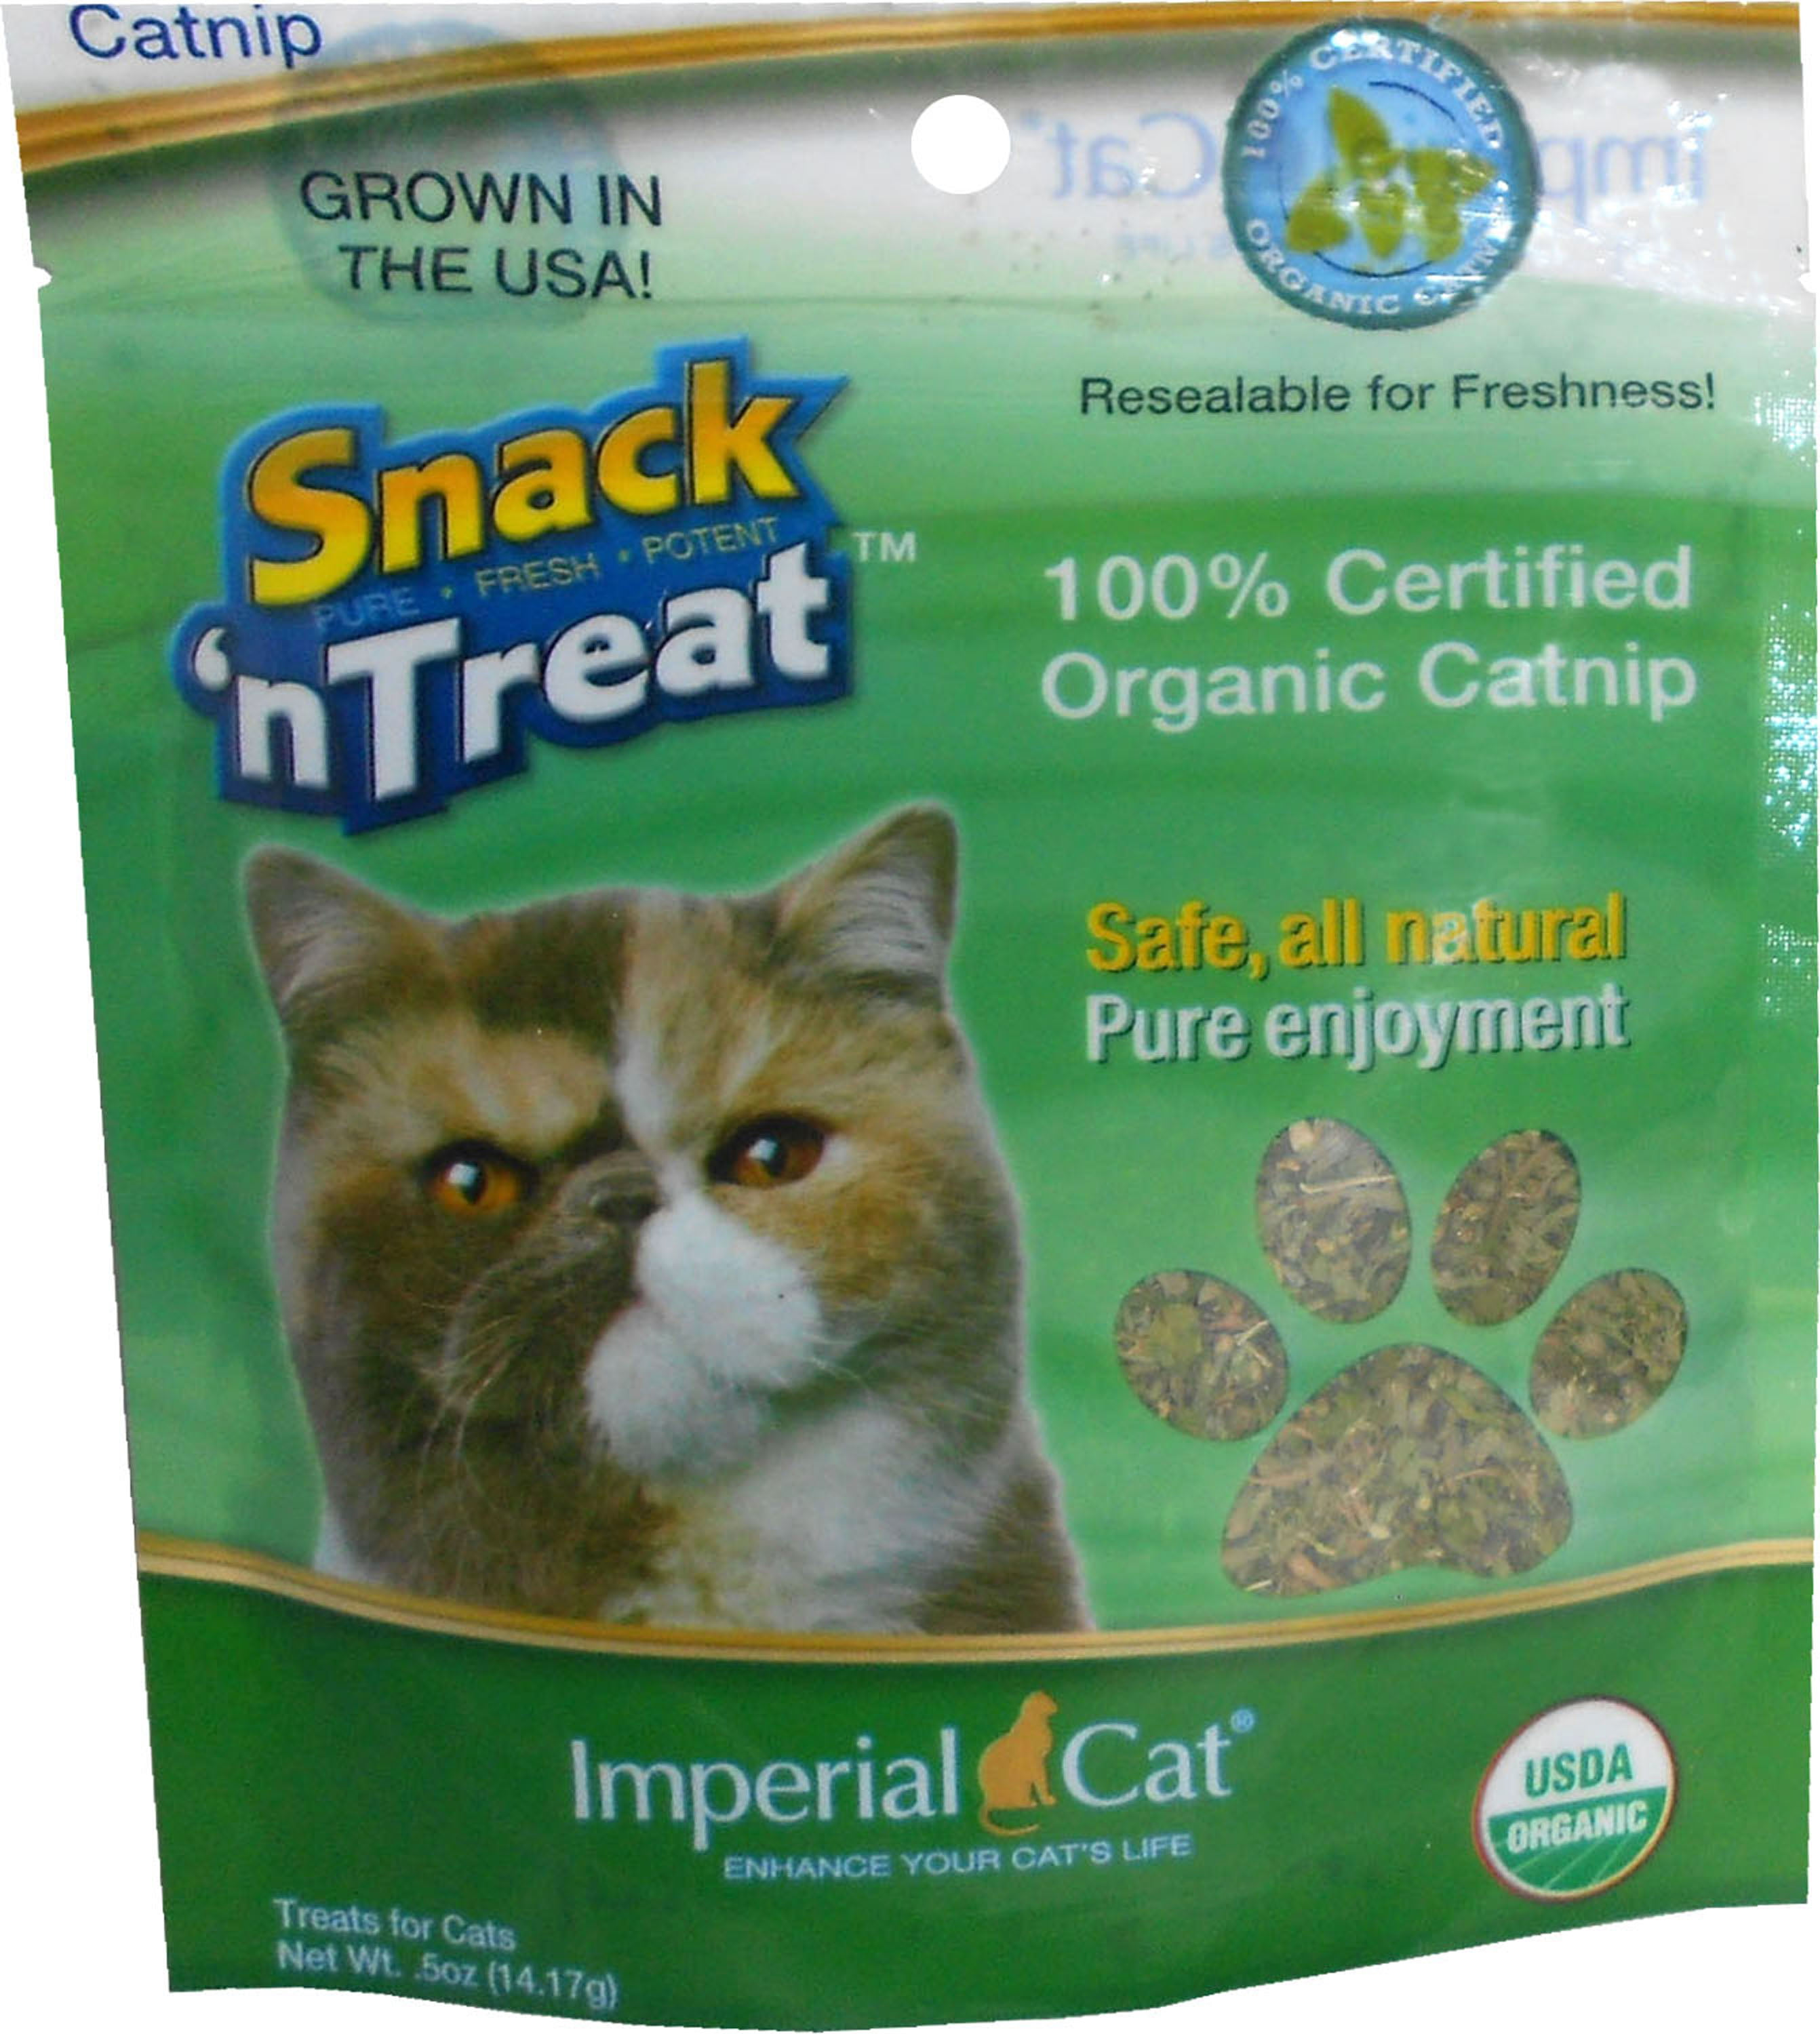 Imperial Cat 1 2 oz. Certified Organic Catnip by Cat Claws Inc.